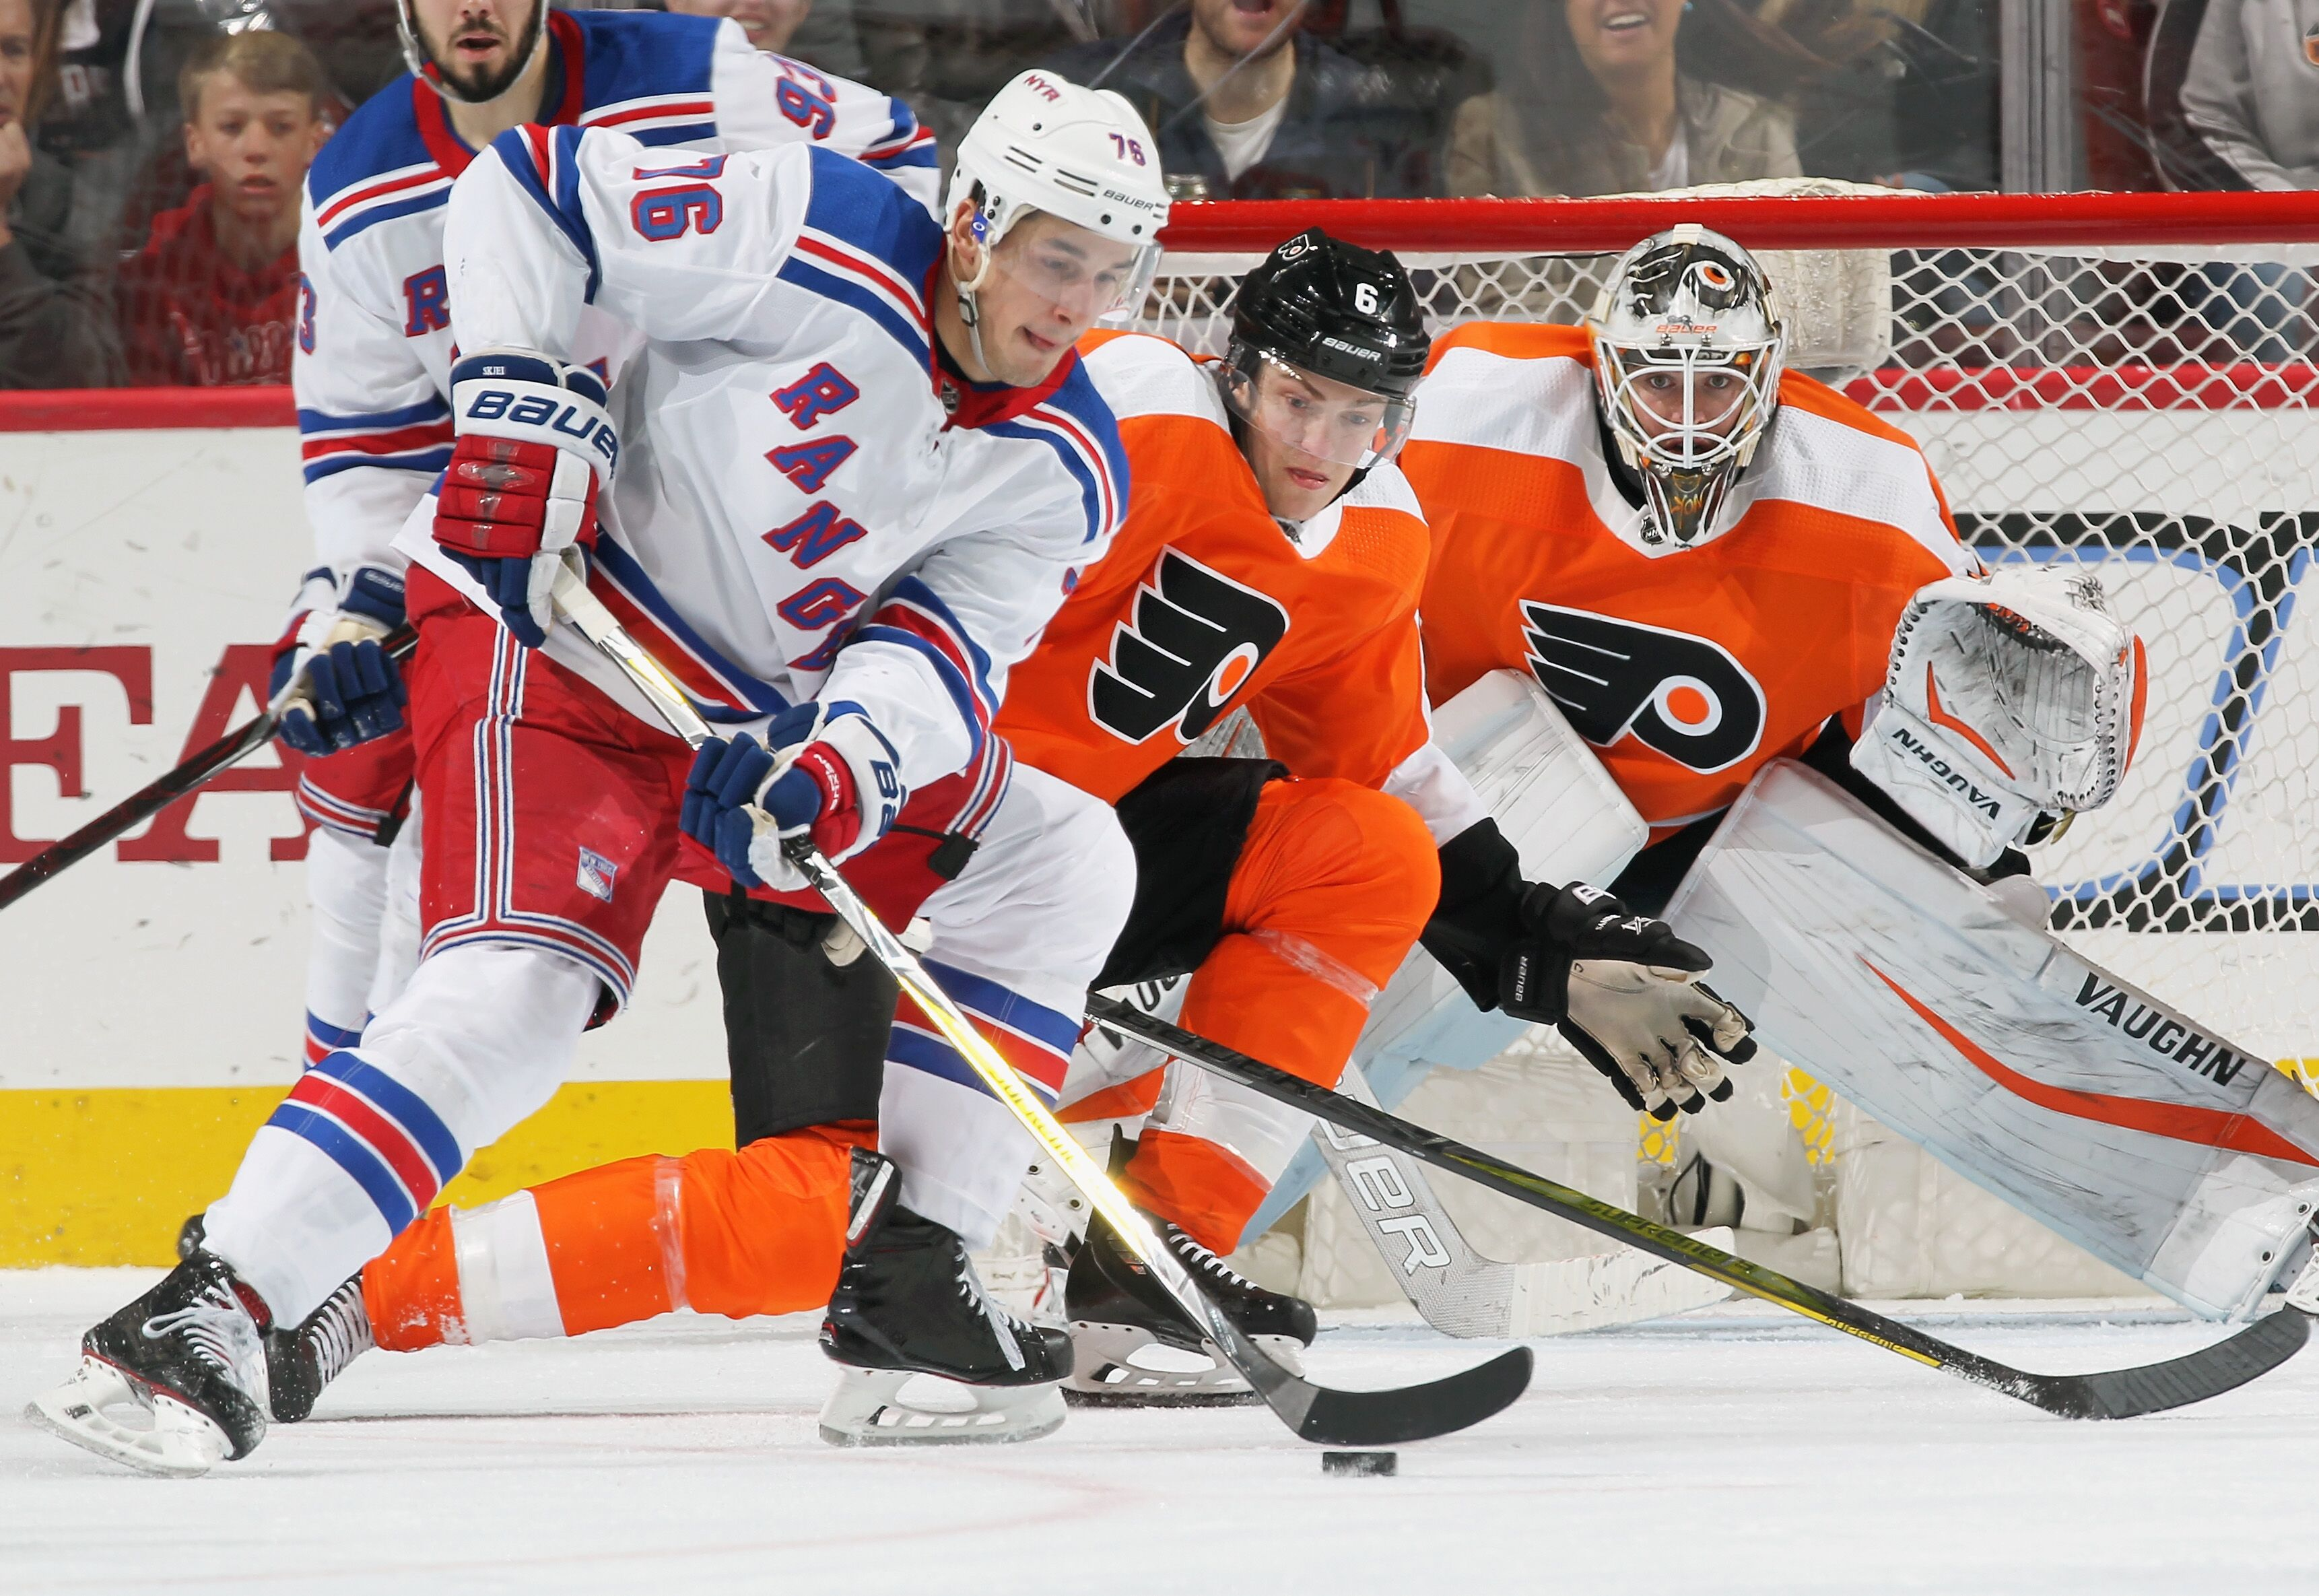 936720910-new-york-rangers-v-philadelphia-flyers.jpg